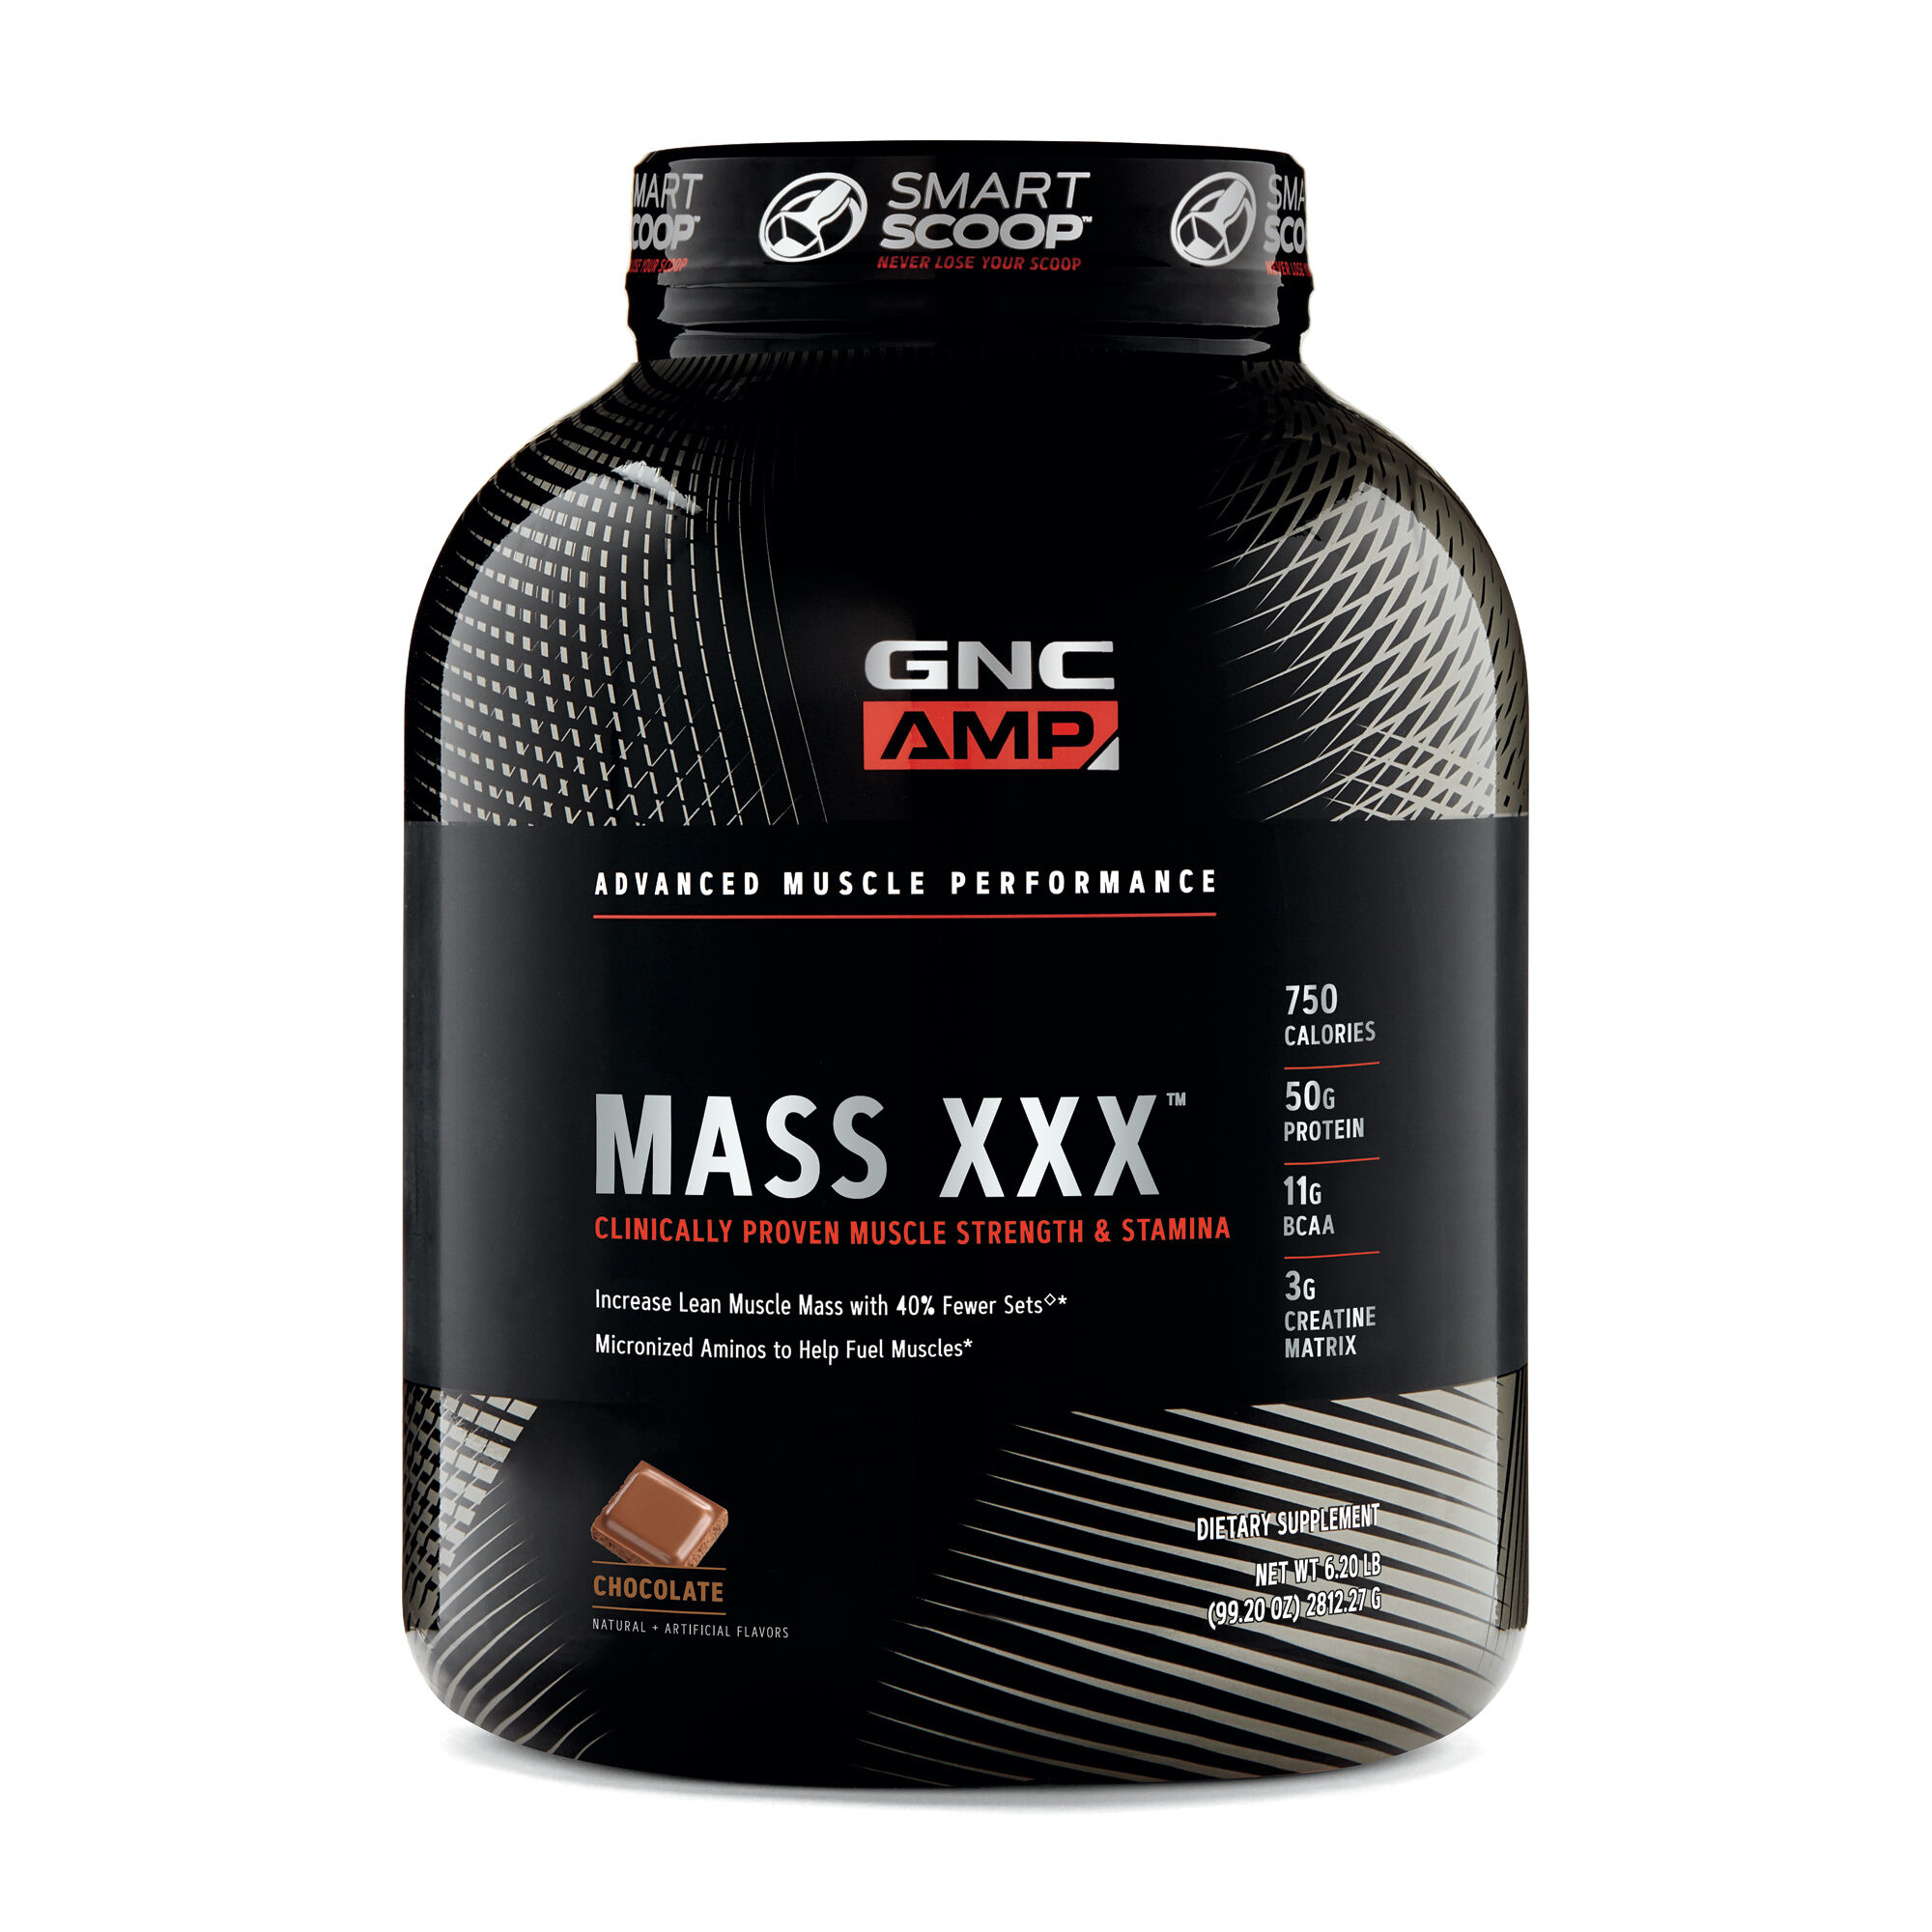 Does mass xxx works